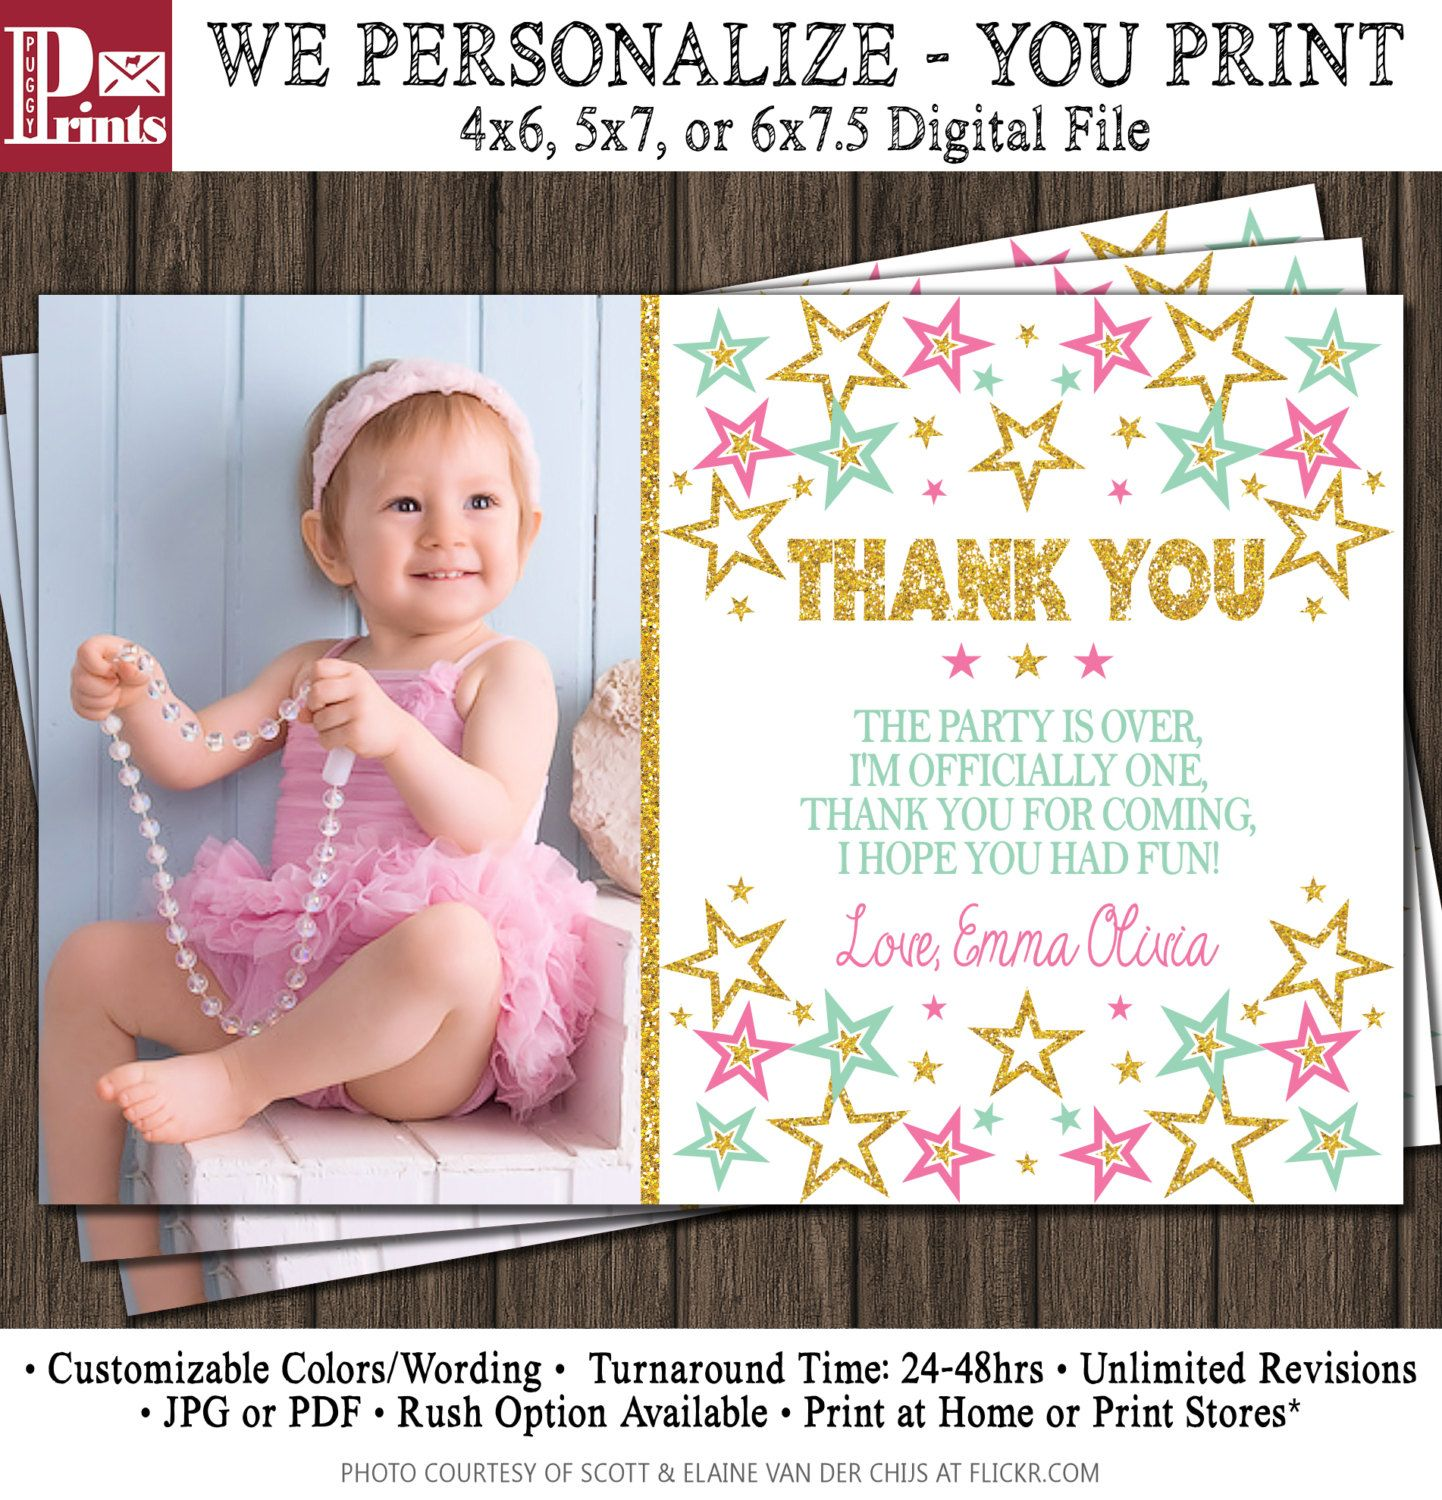 Twinkle Twinkle Little Star Birthday Thank You Card with Photo